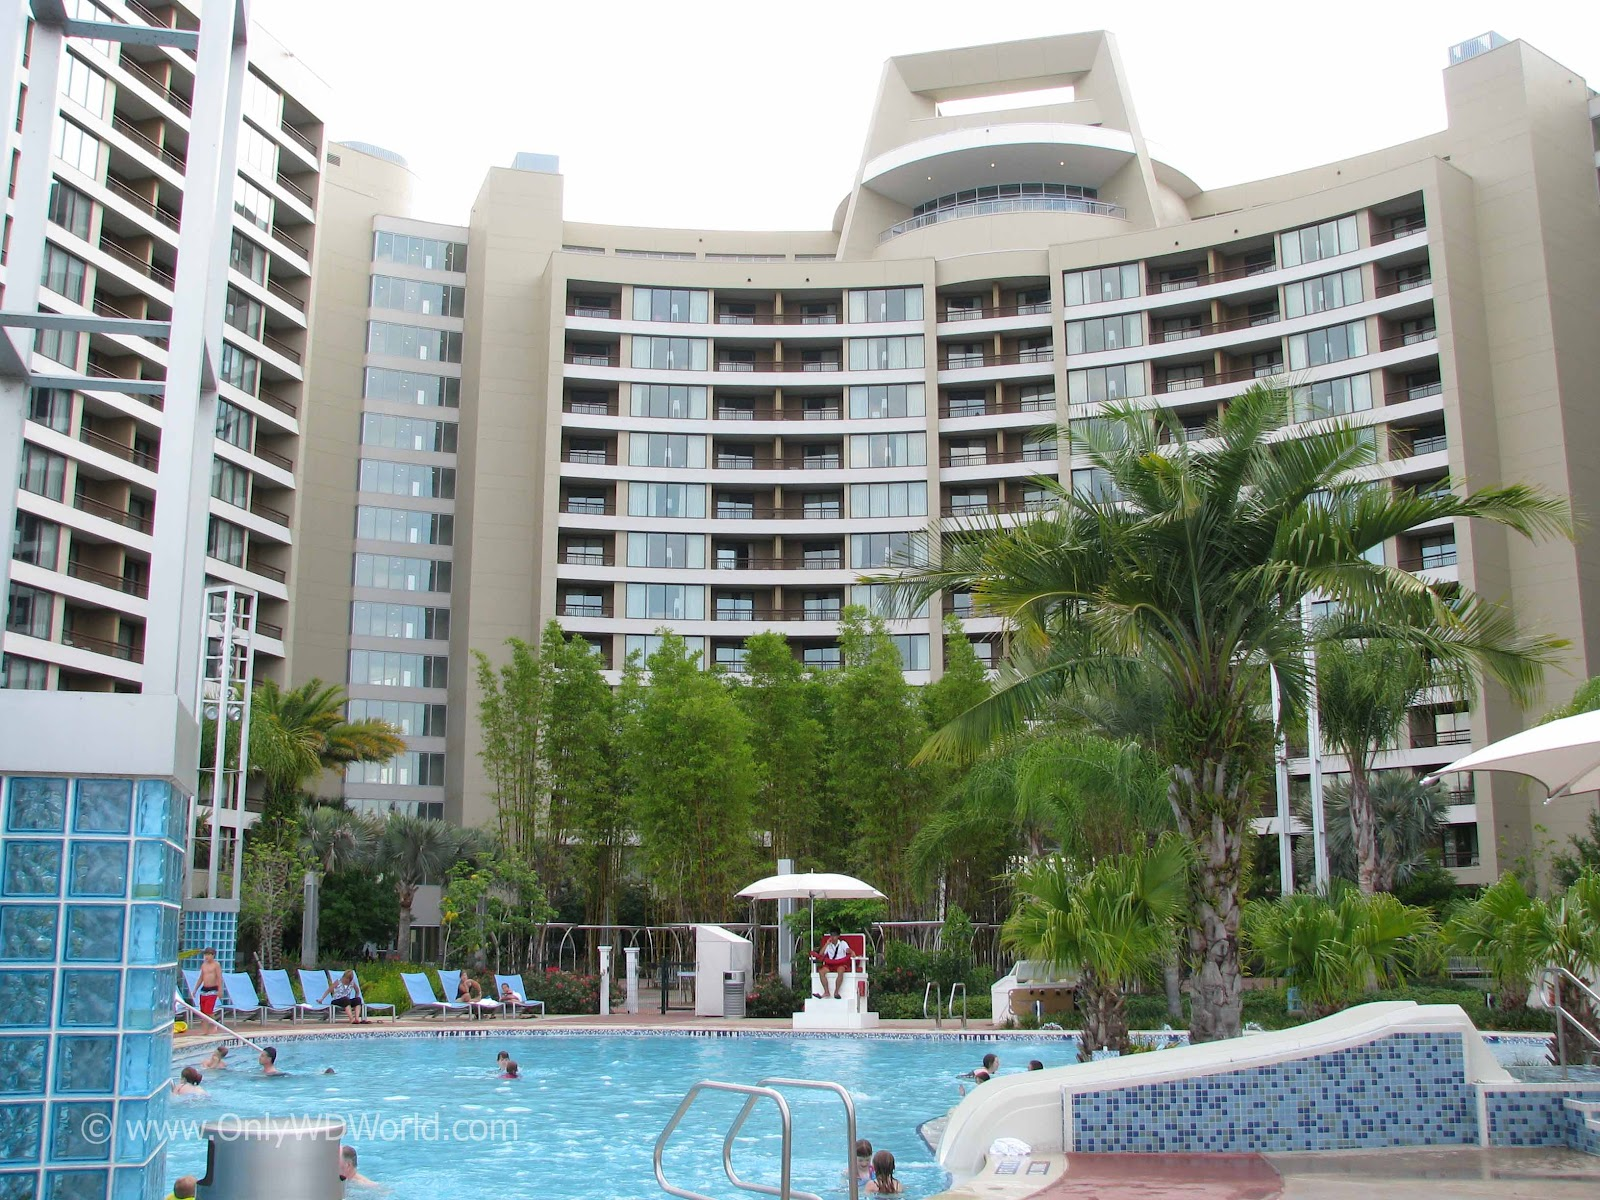 Disney World Hotel Room Only Discount For April